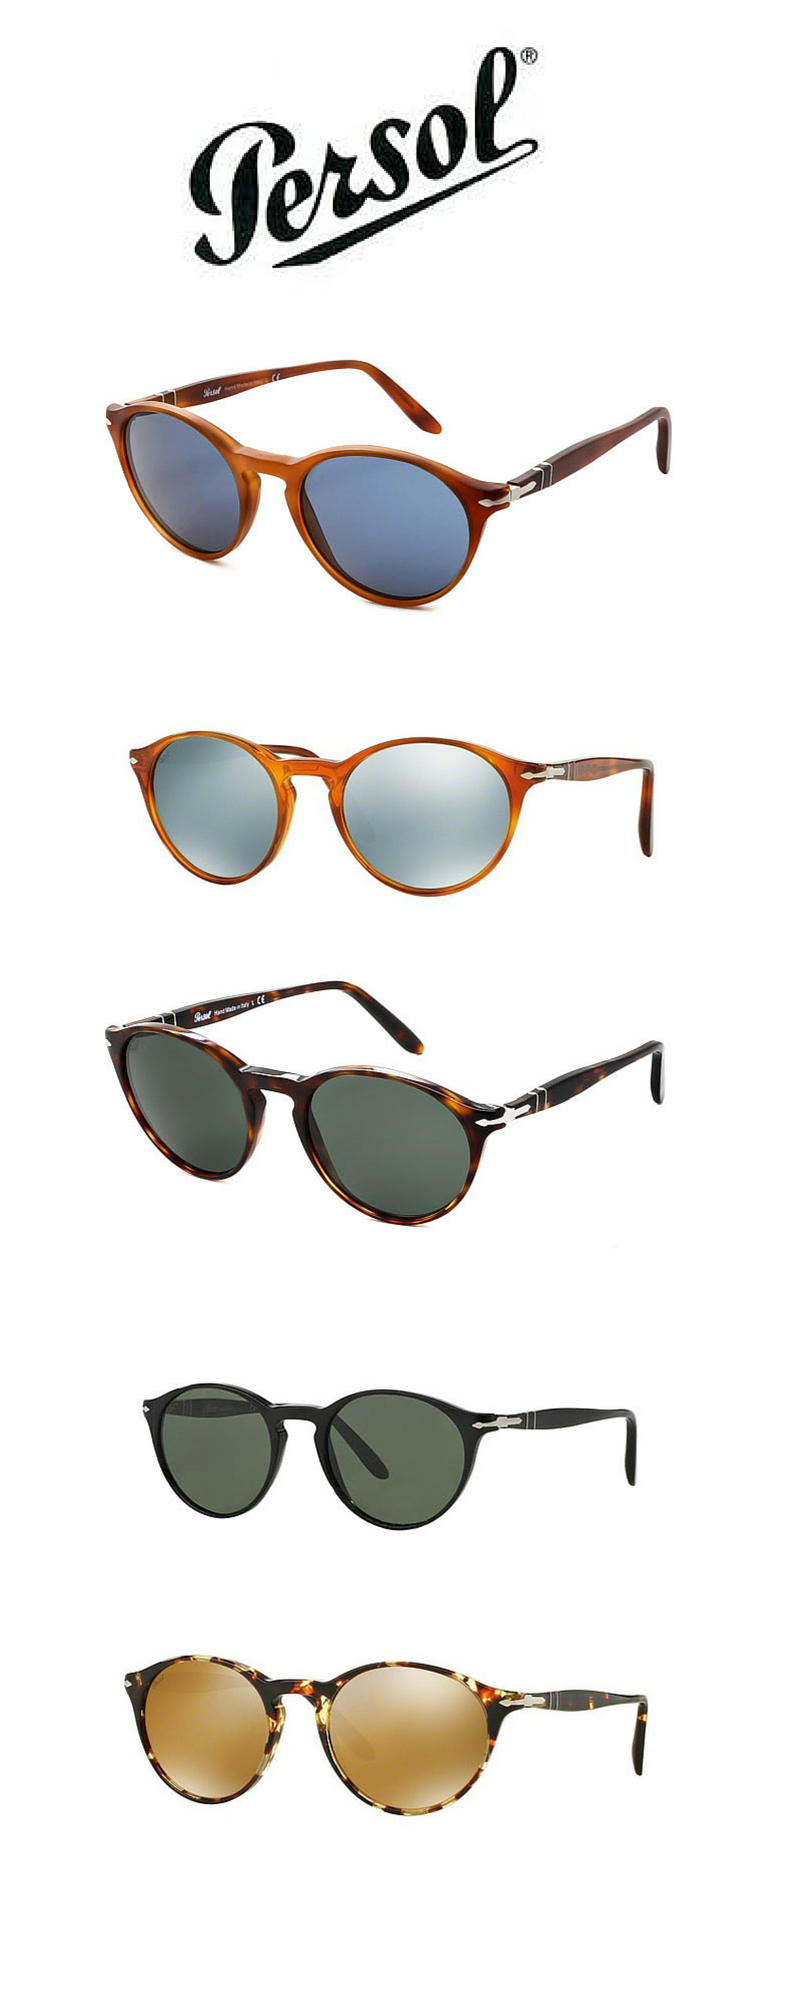 0eae7f52bad5 Persol PO3092  sunglasses collection   http   www.smartbuyglasses.co.